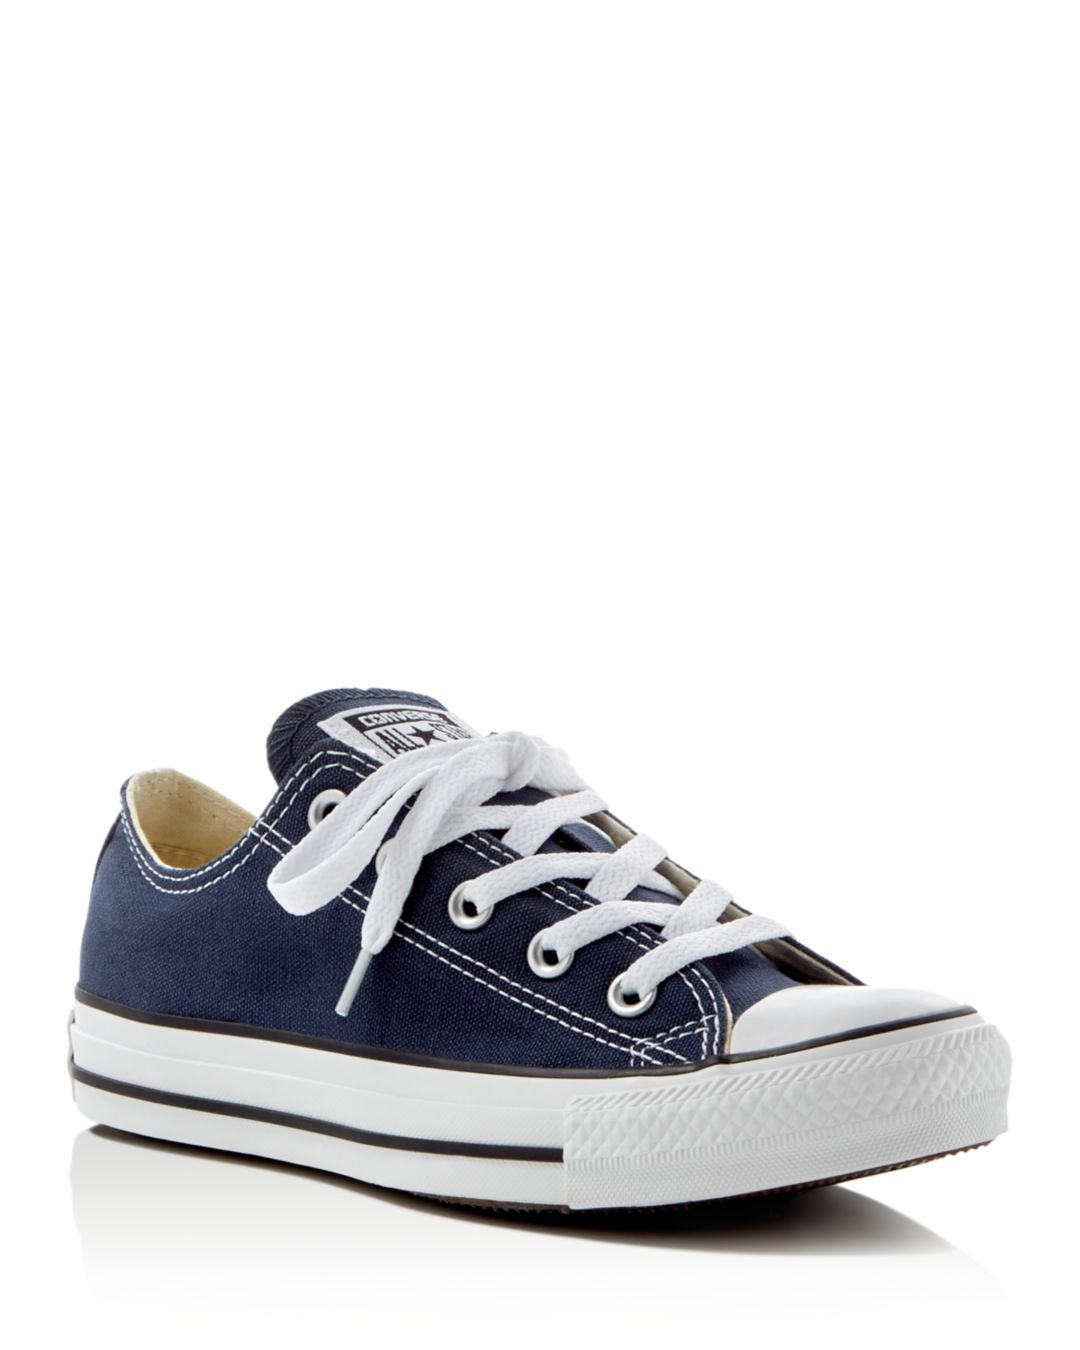 01c2e3021181 Lyst - Converse Women s Chuck Taylor All Star Lace Up Sneakers in Blue